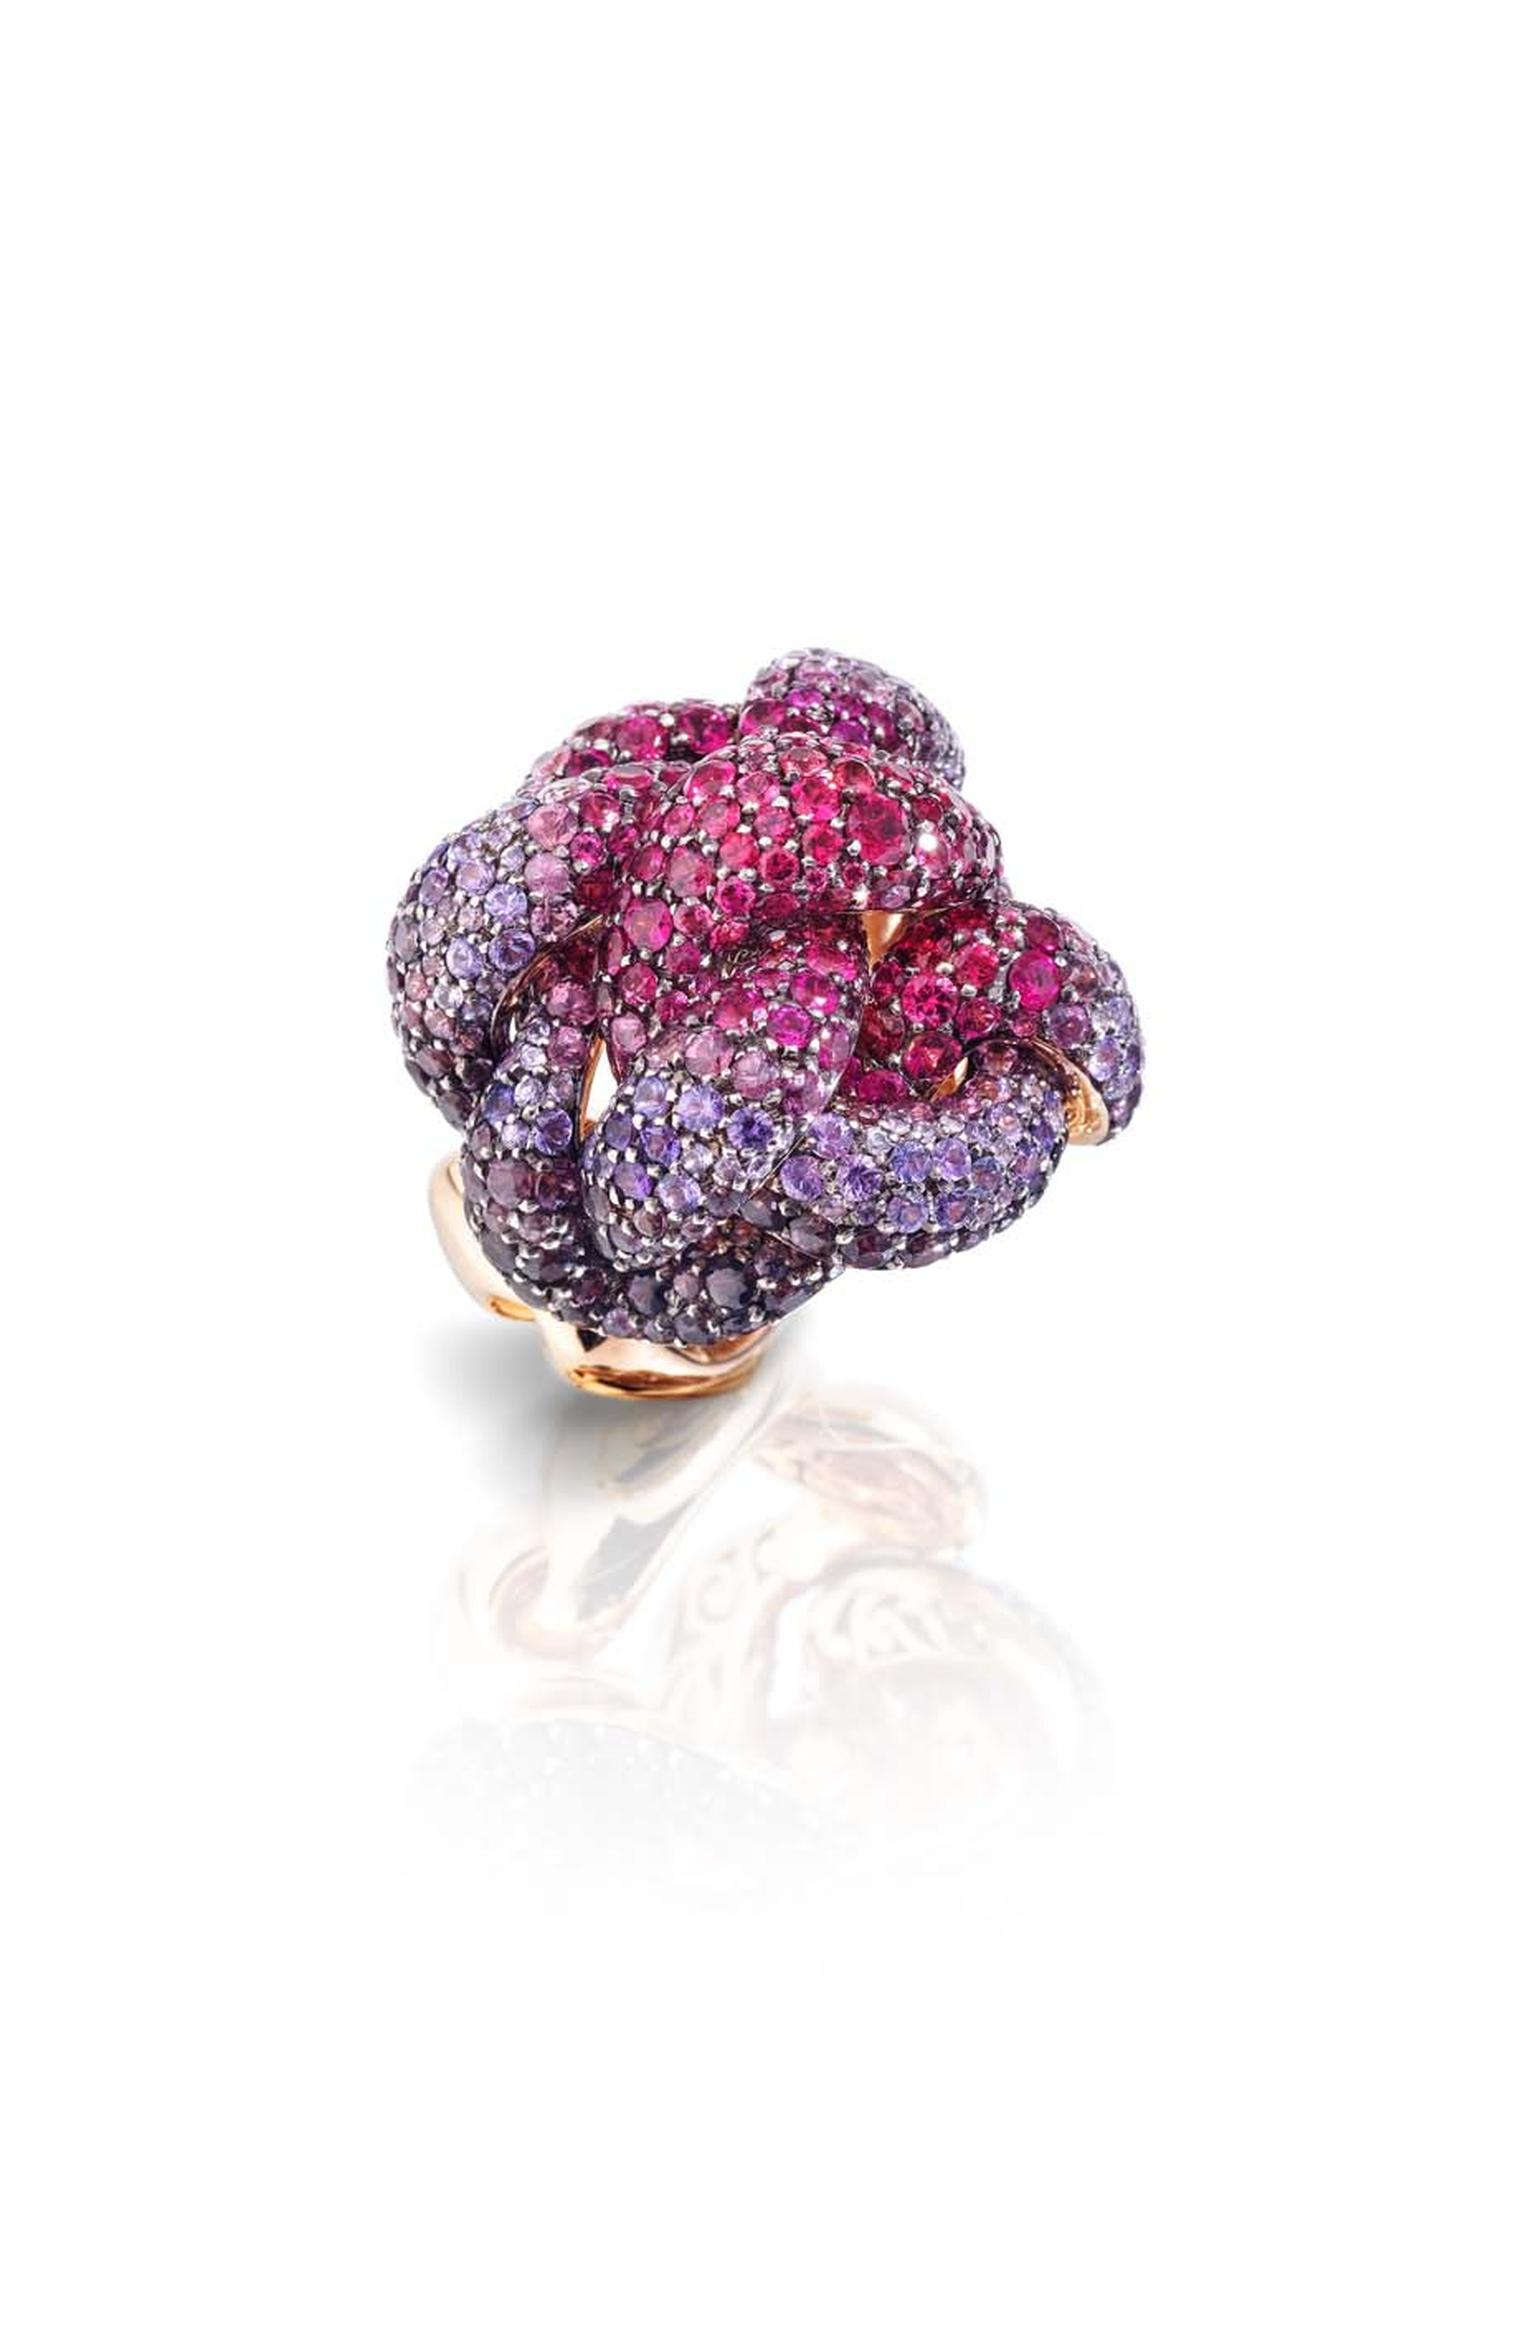 Pomellato Pom Pom ring with a pavé of spinels, tourmalines and sapphires arranged in an ombre sequence.